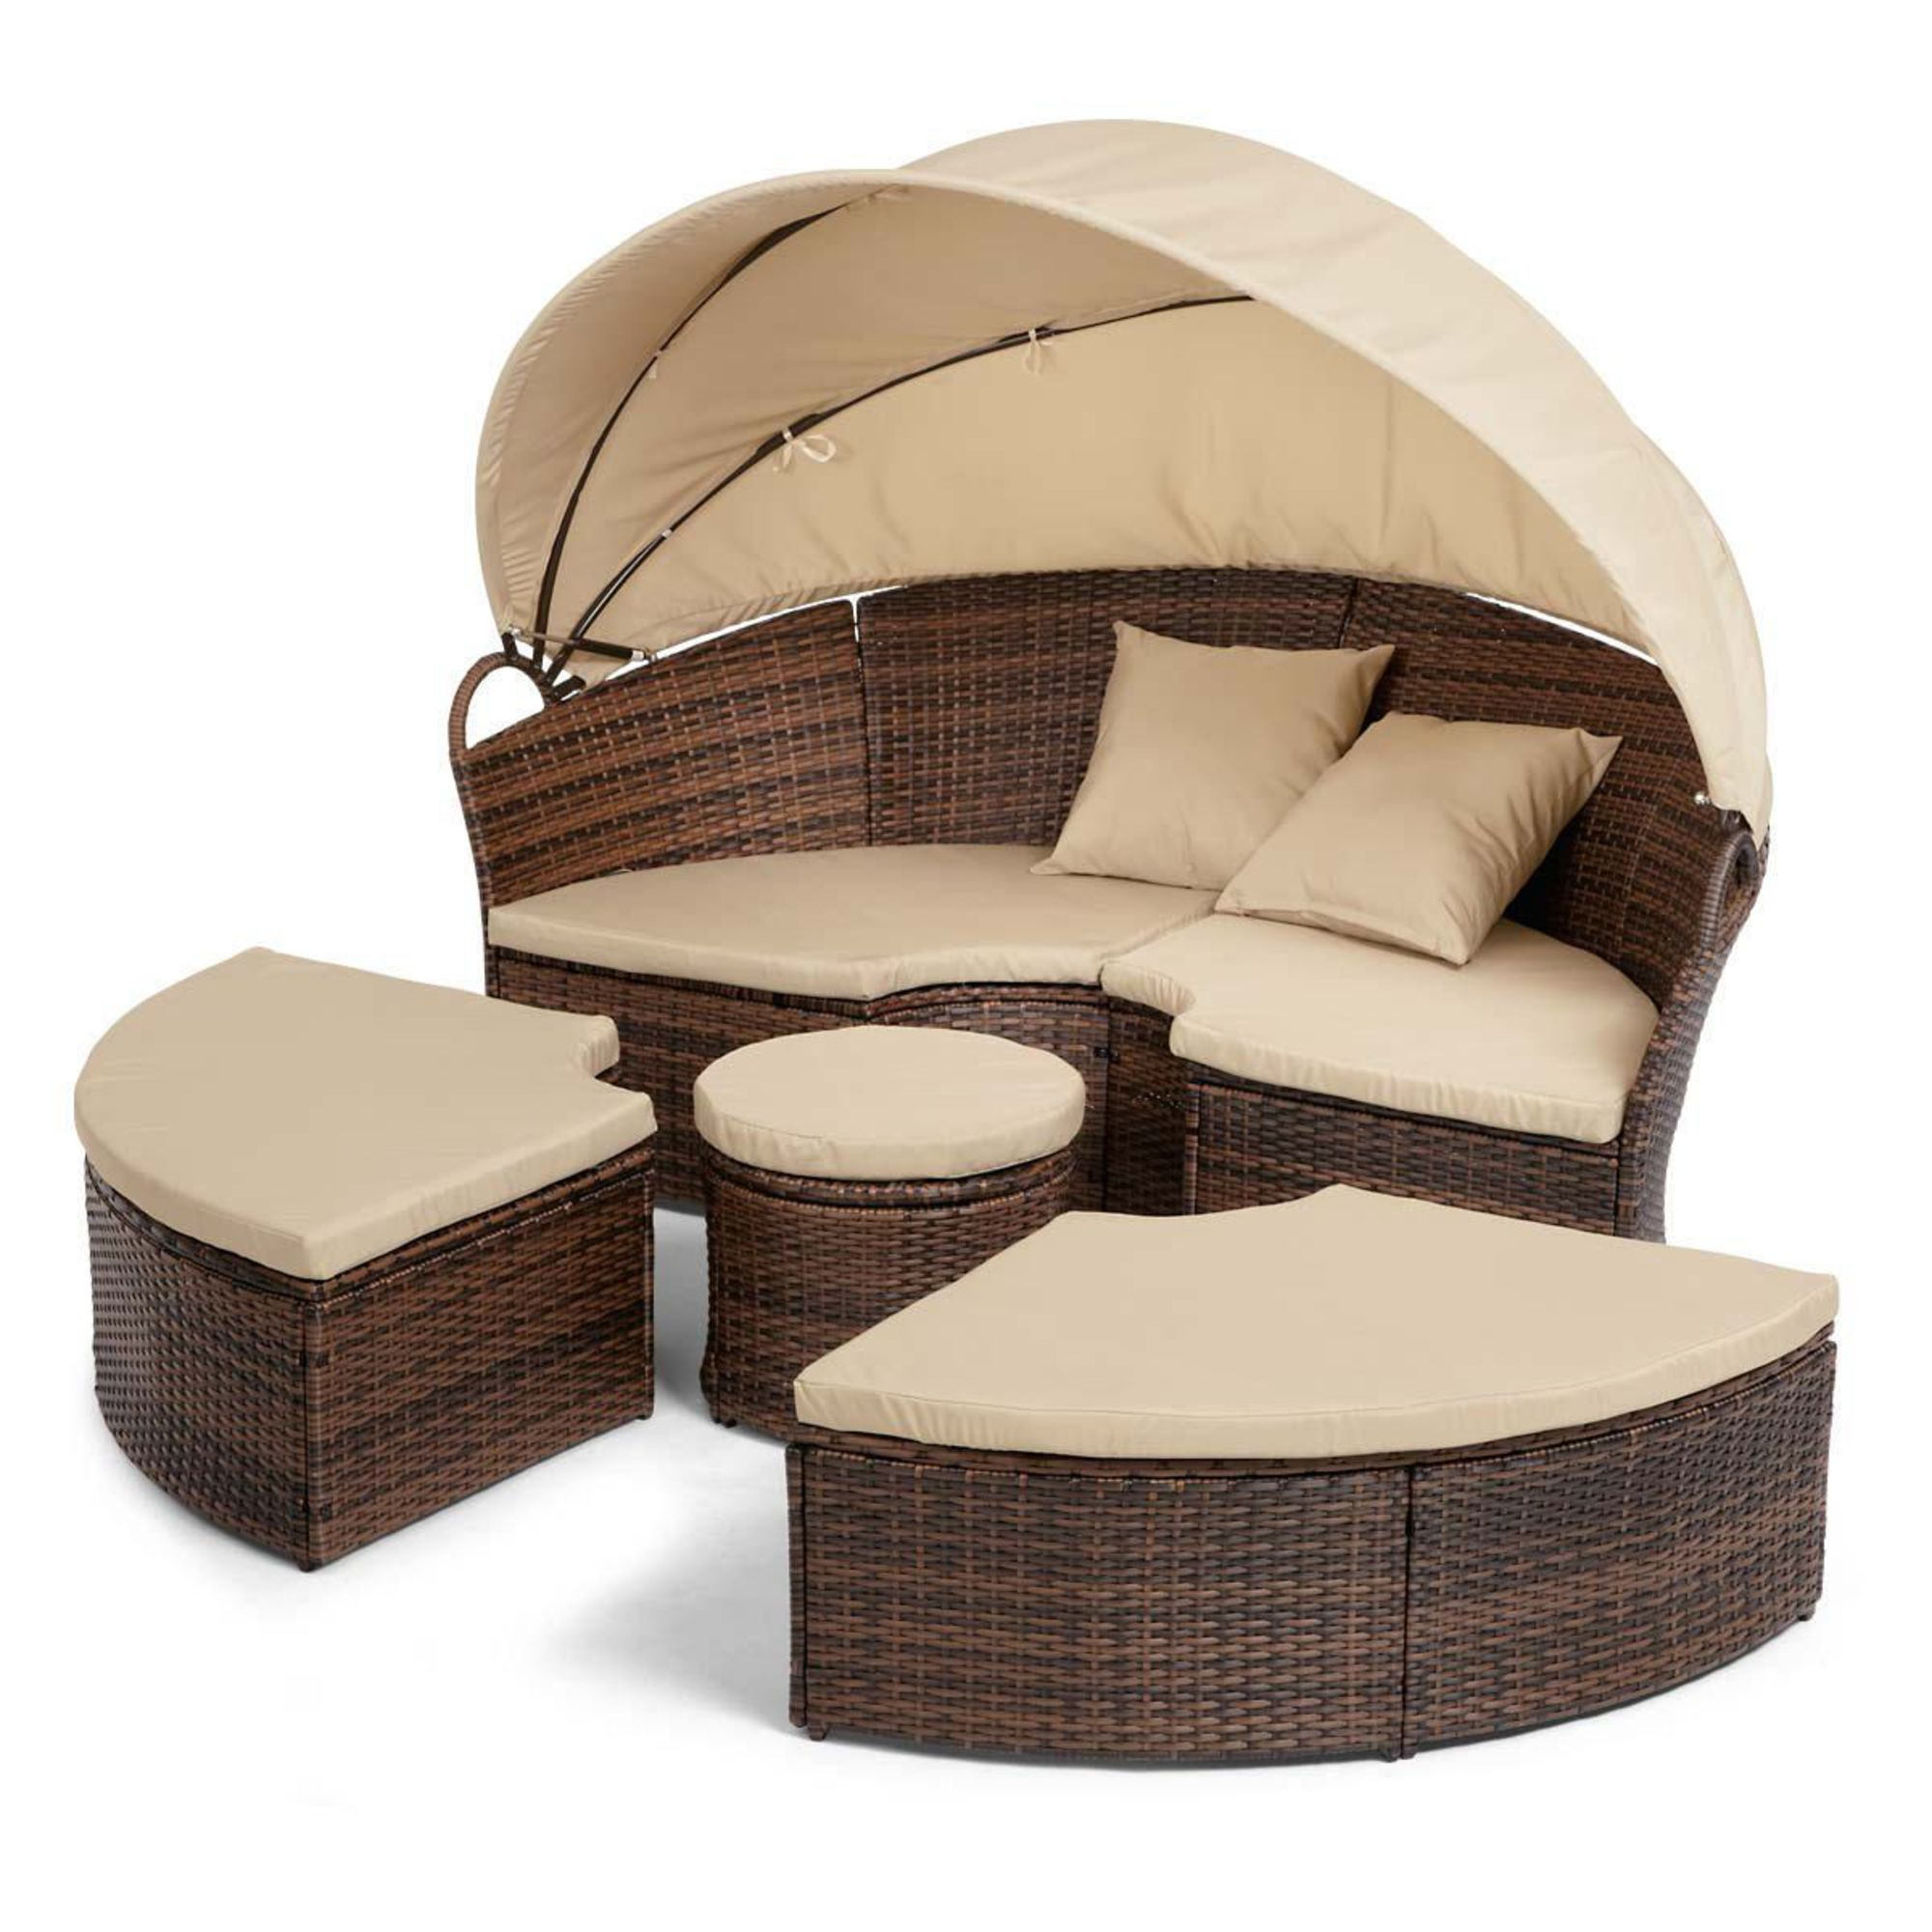 sonneninsel rattan grau poly rattan lounge grau neuesten design kollektionen f r die familien. Black Bedroom Furniture Sets. Home Design Ideas